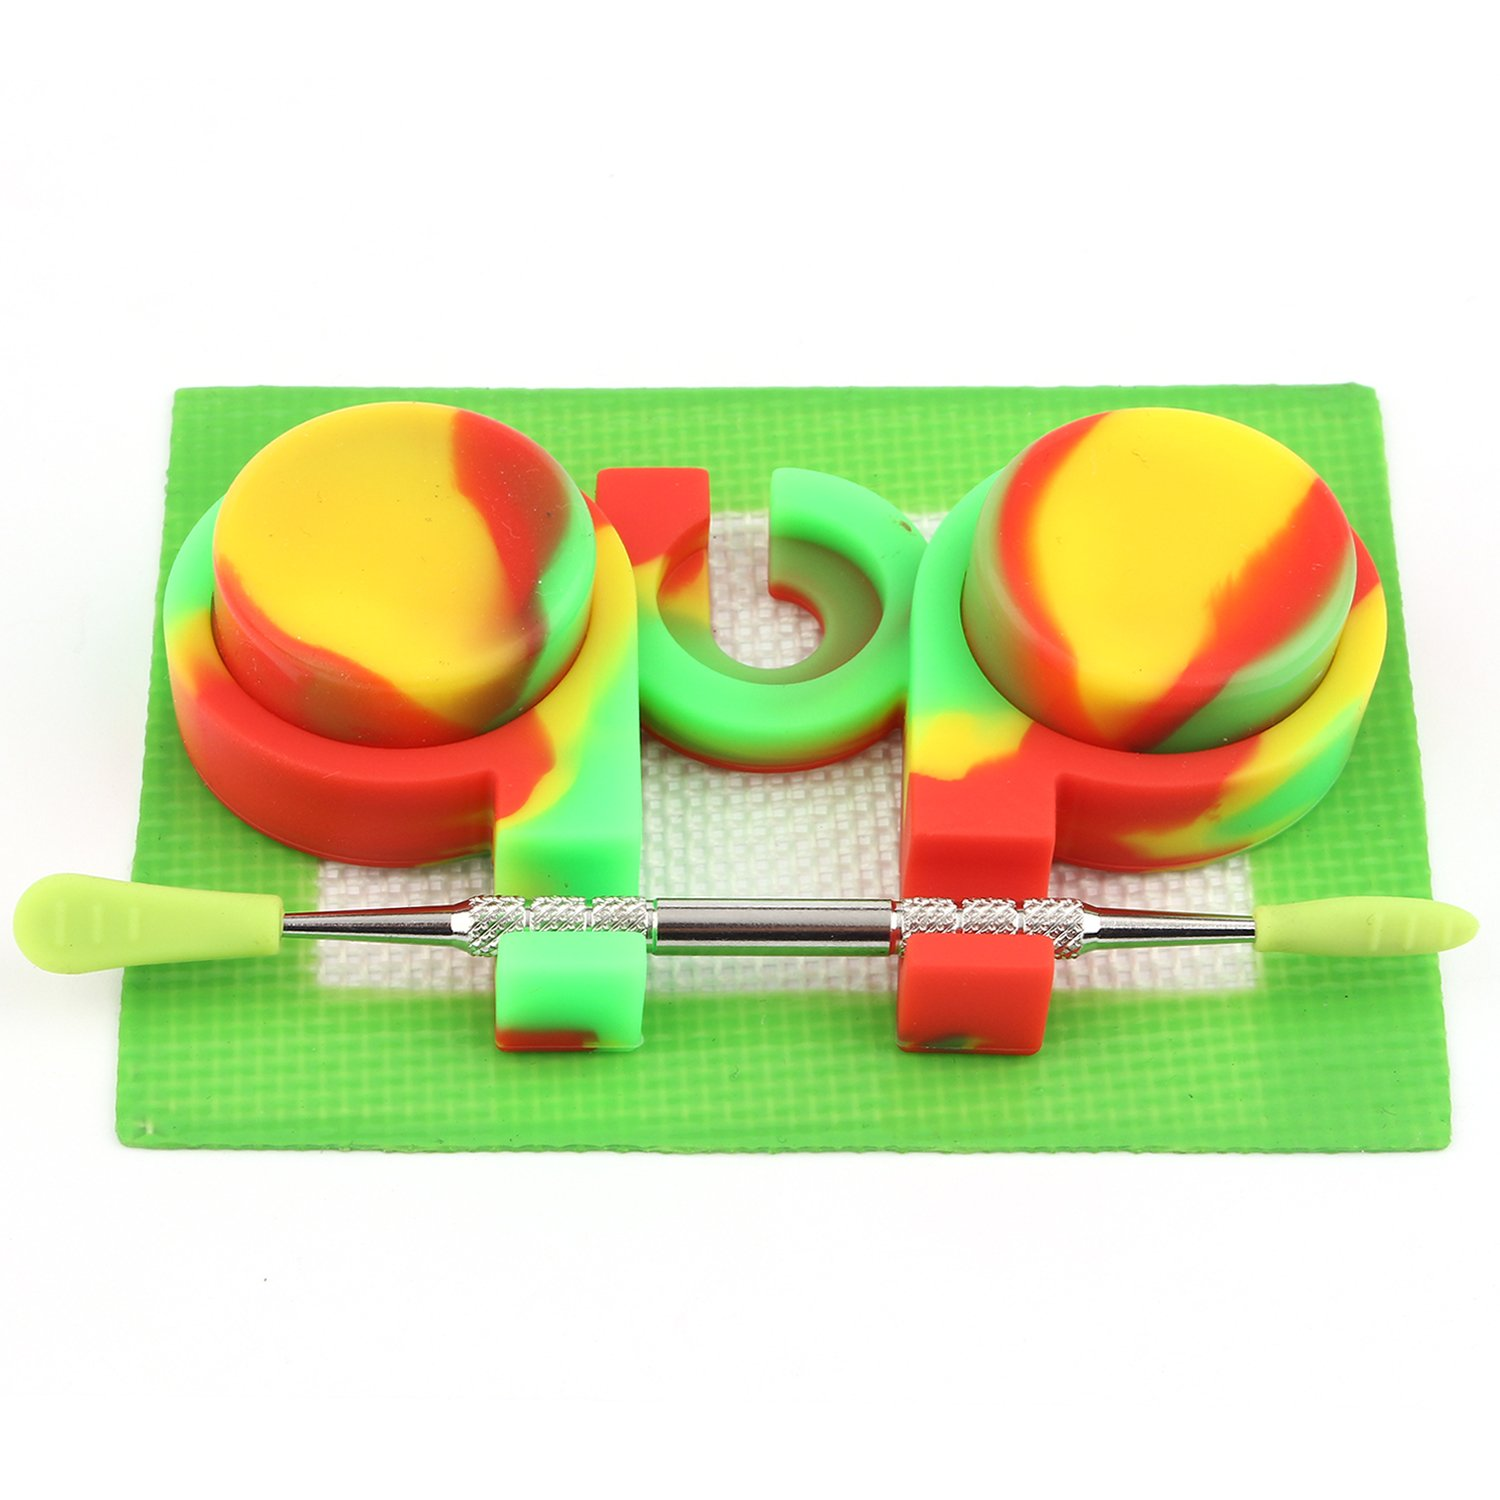 CEOKS 3ml Non-Stick Silicone Container (2pcs) and Container Holder (1) and Stainless Steel Wax Carving Tool 4.75 (1) and Silicone Wax Mat 4.3 x 3.3(1) (red/Yellow/Green)